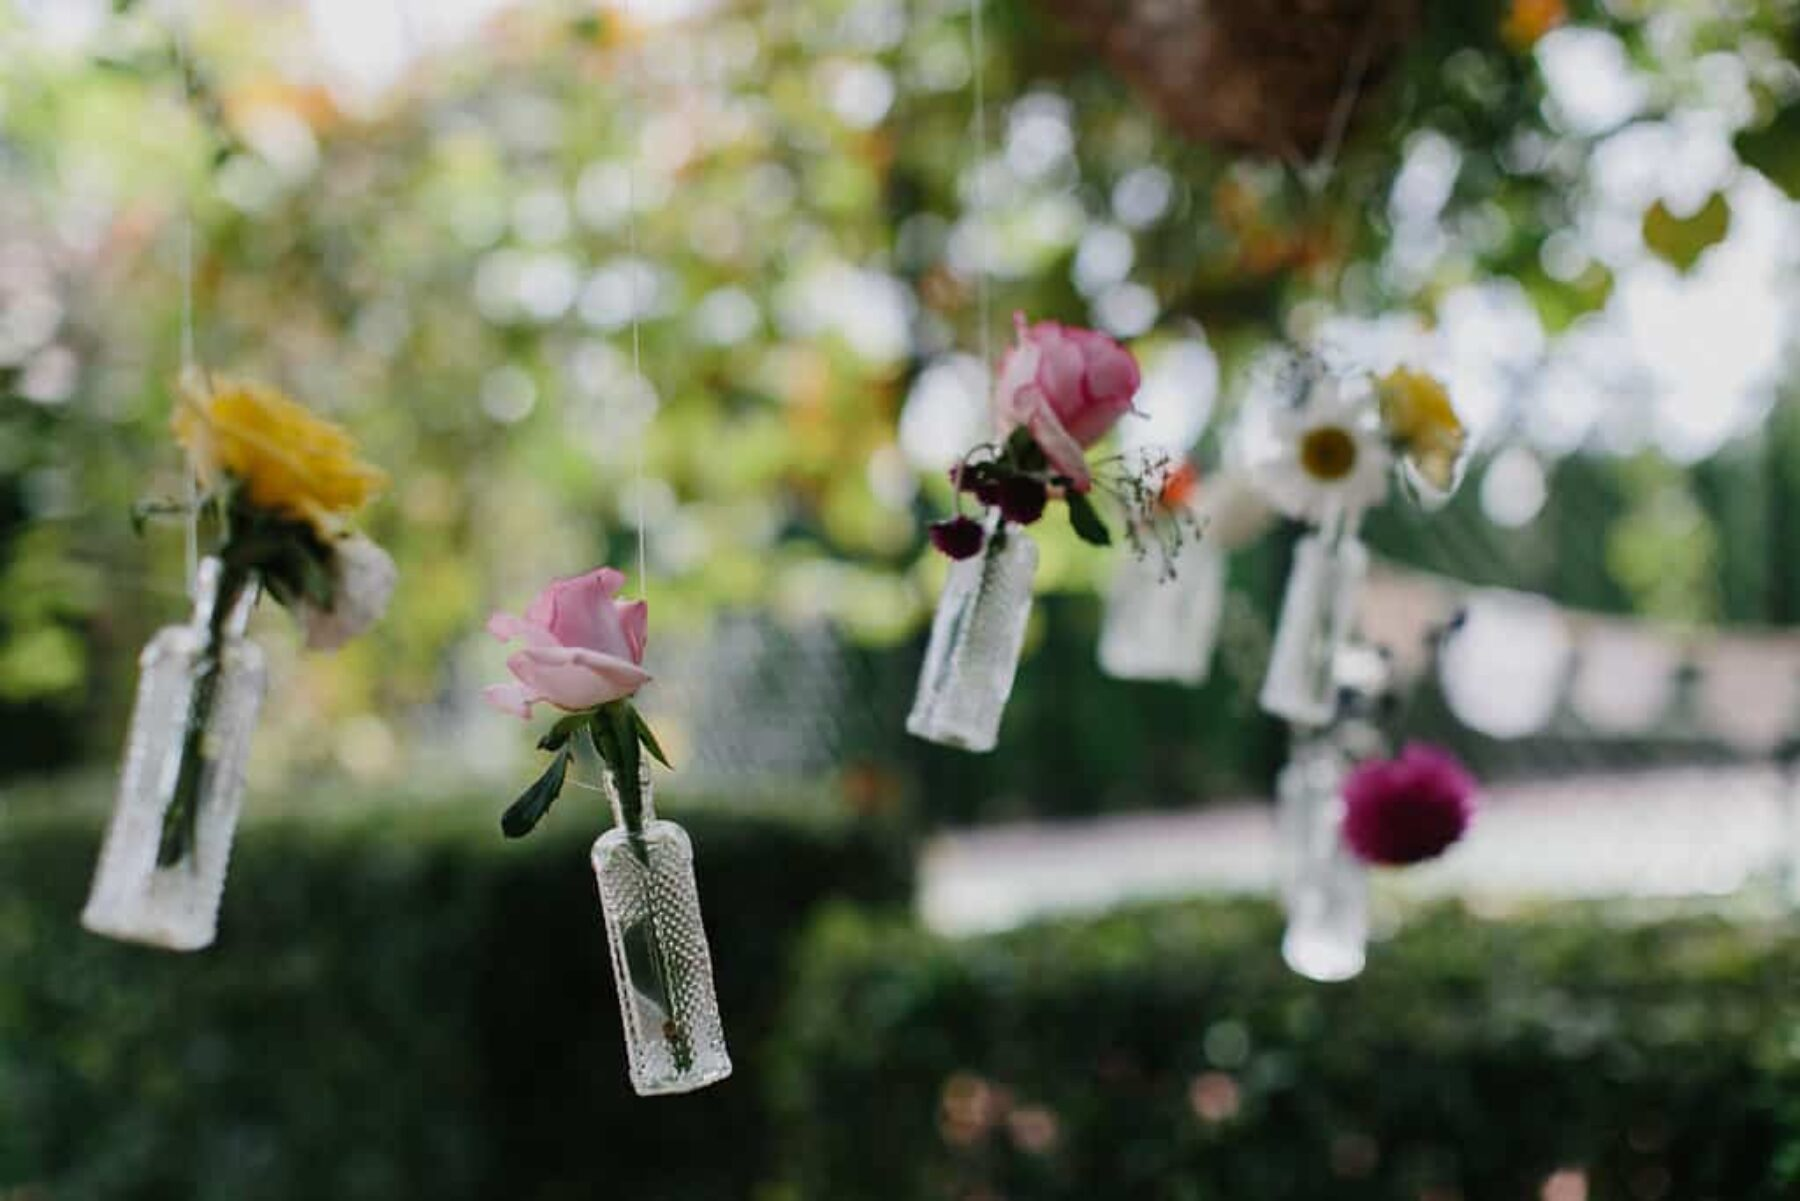 hanging flowers in bottles